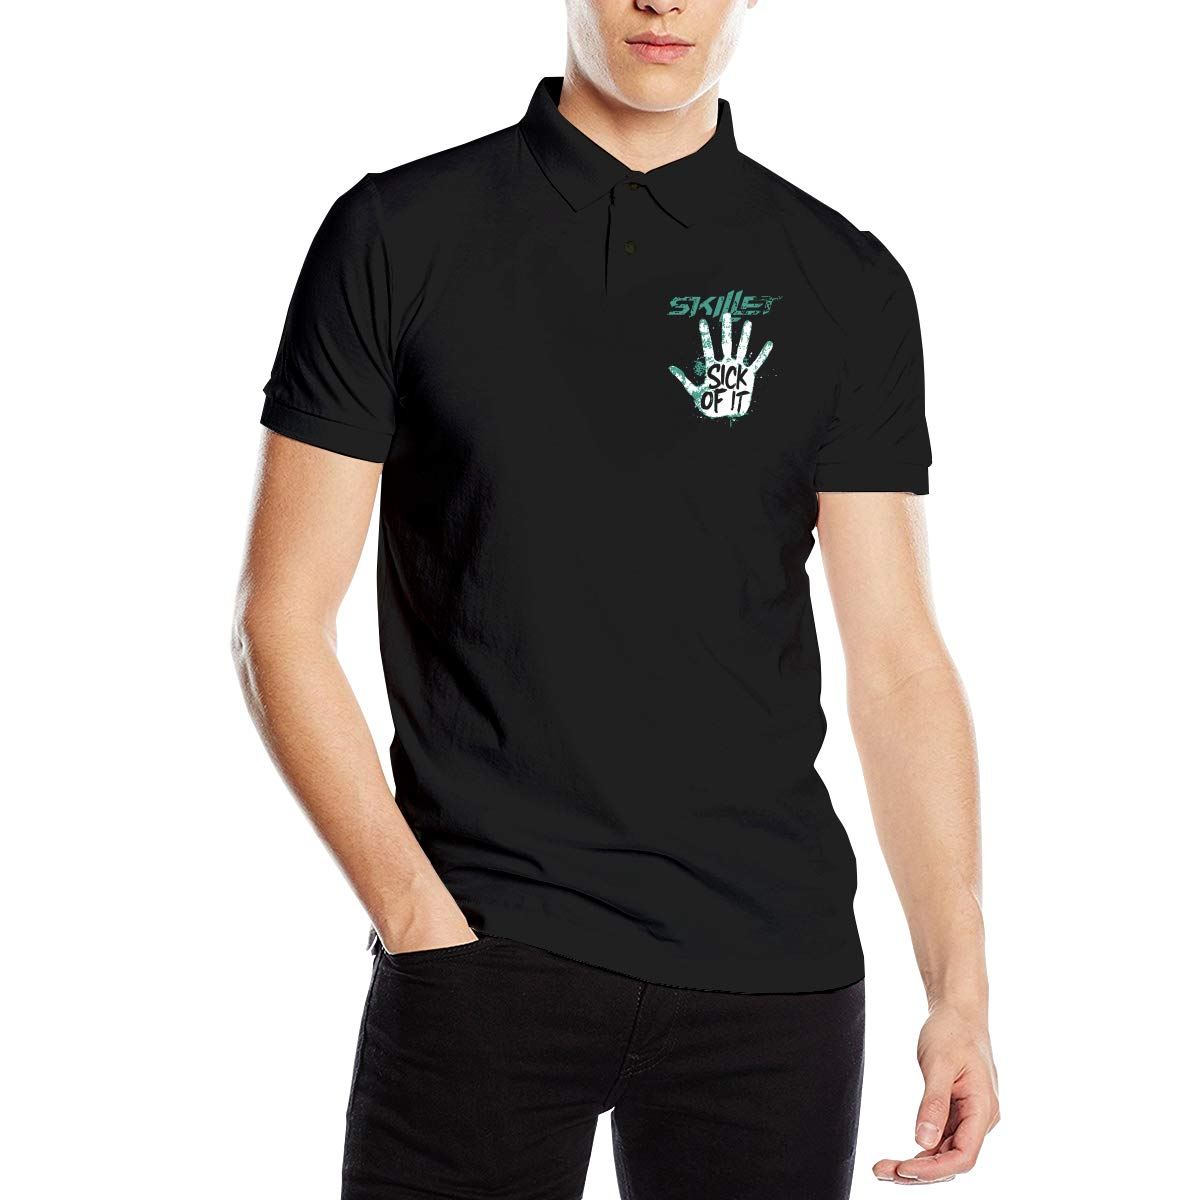 Skillet Band Men Short Sleeve tee Polo T Shirt Camisetas Casual ...